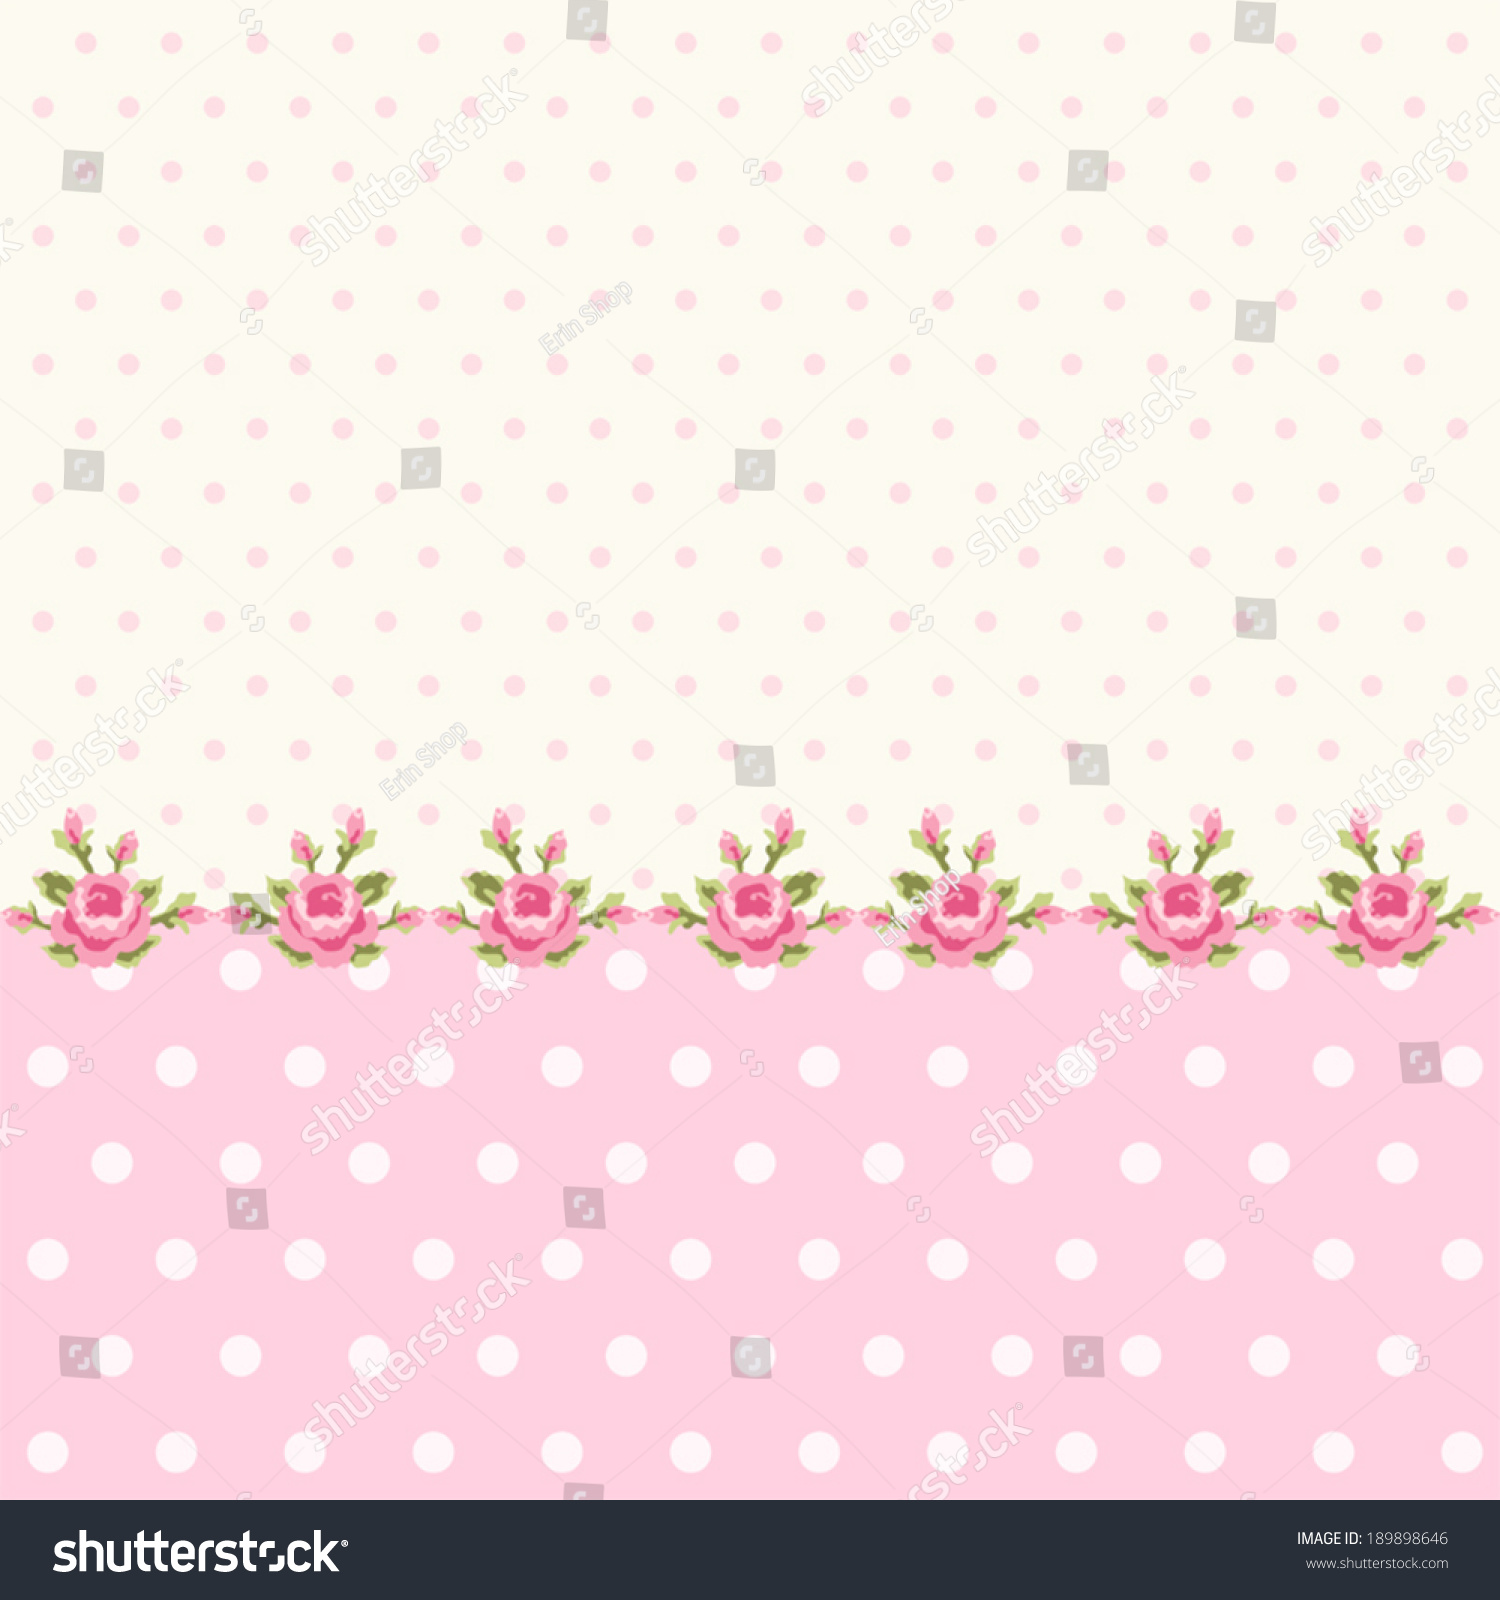 Vintage Polka Dots Background With Border Of Roses In Shabby Chic Style